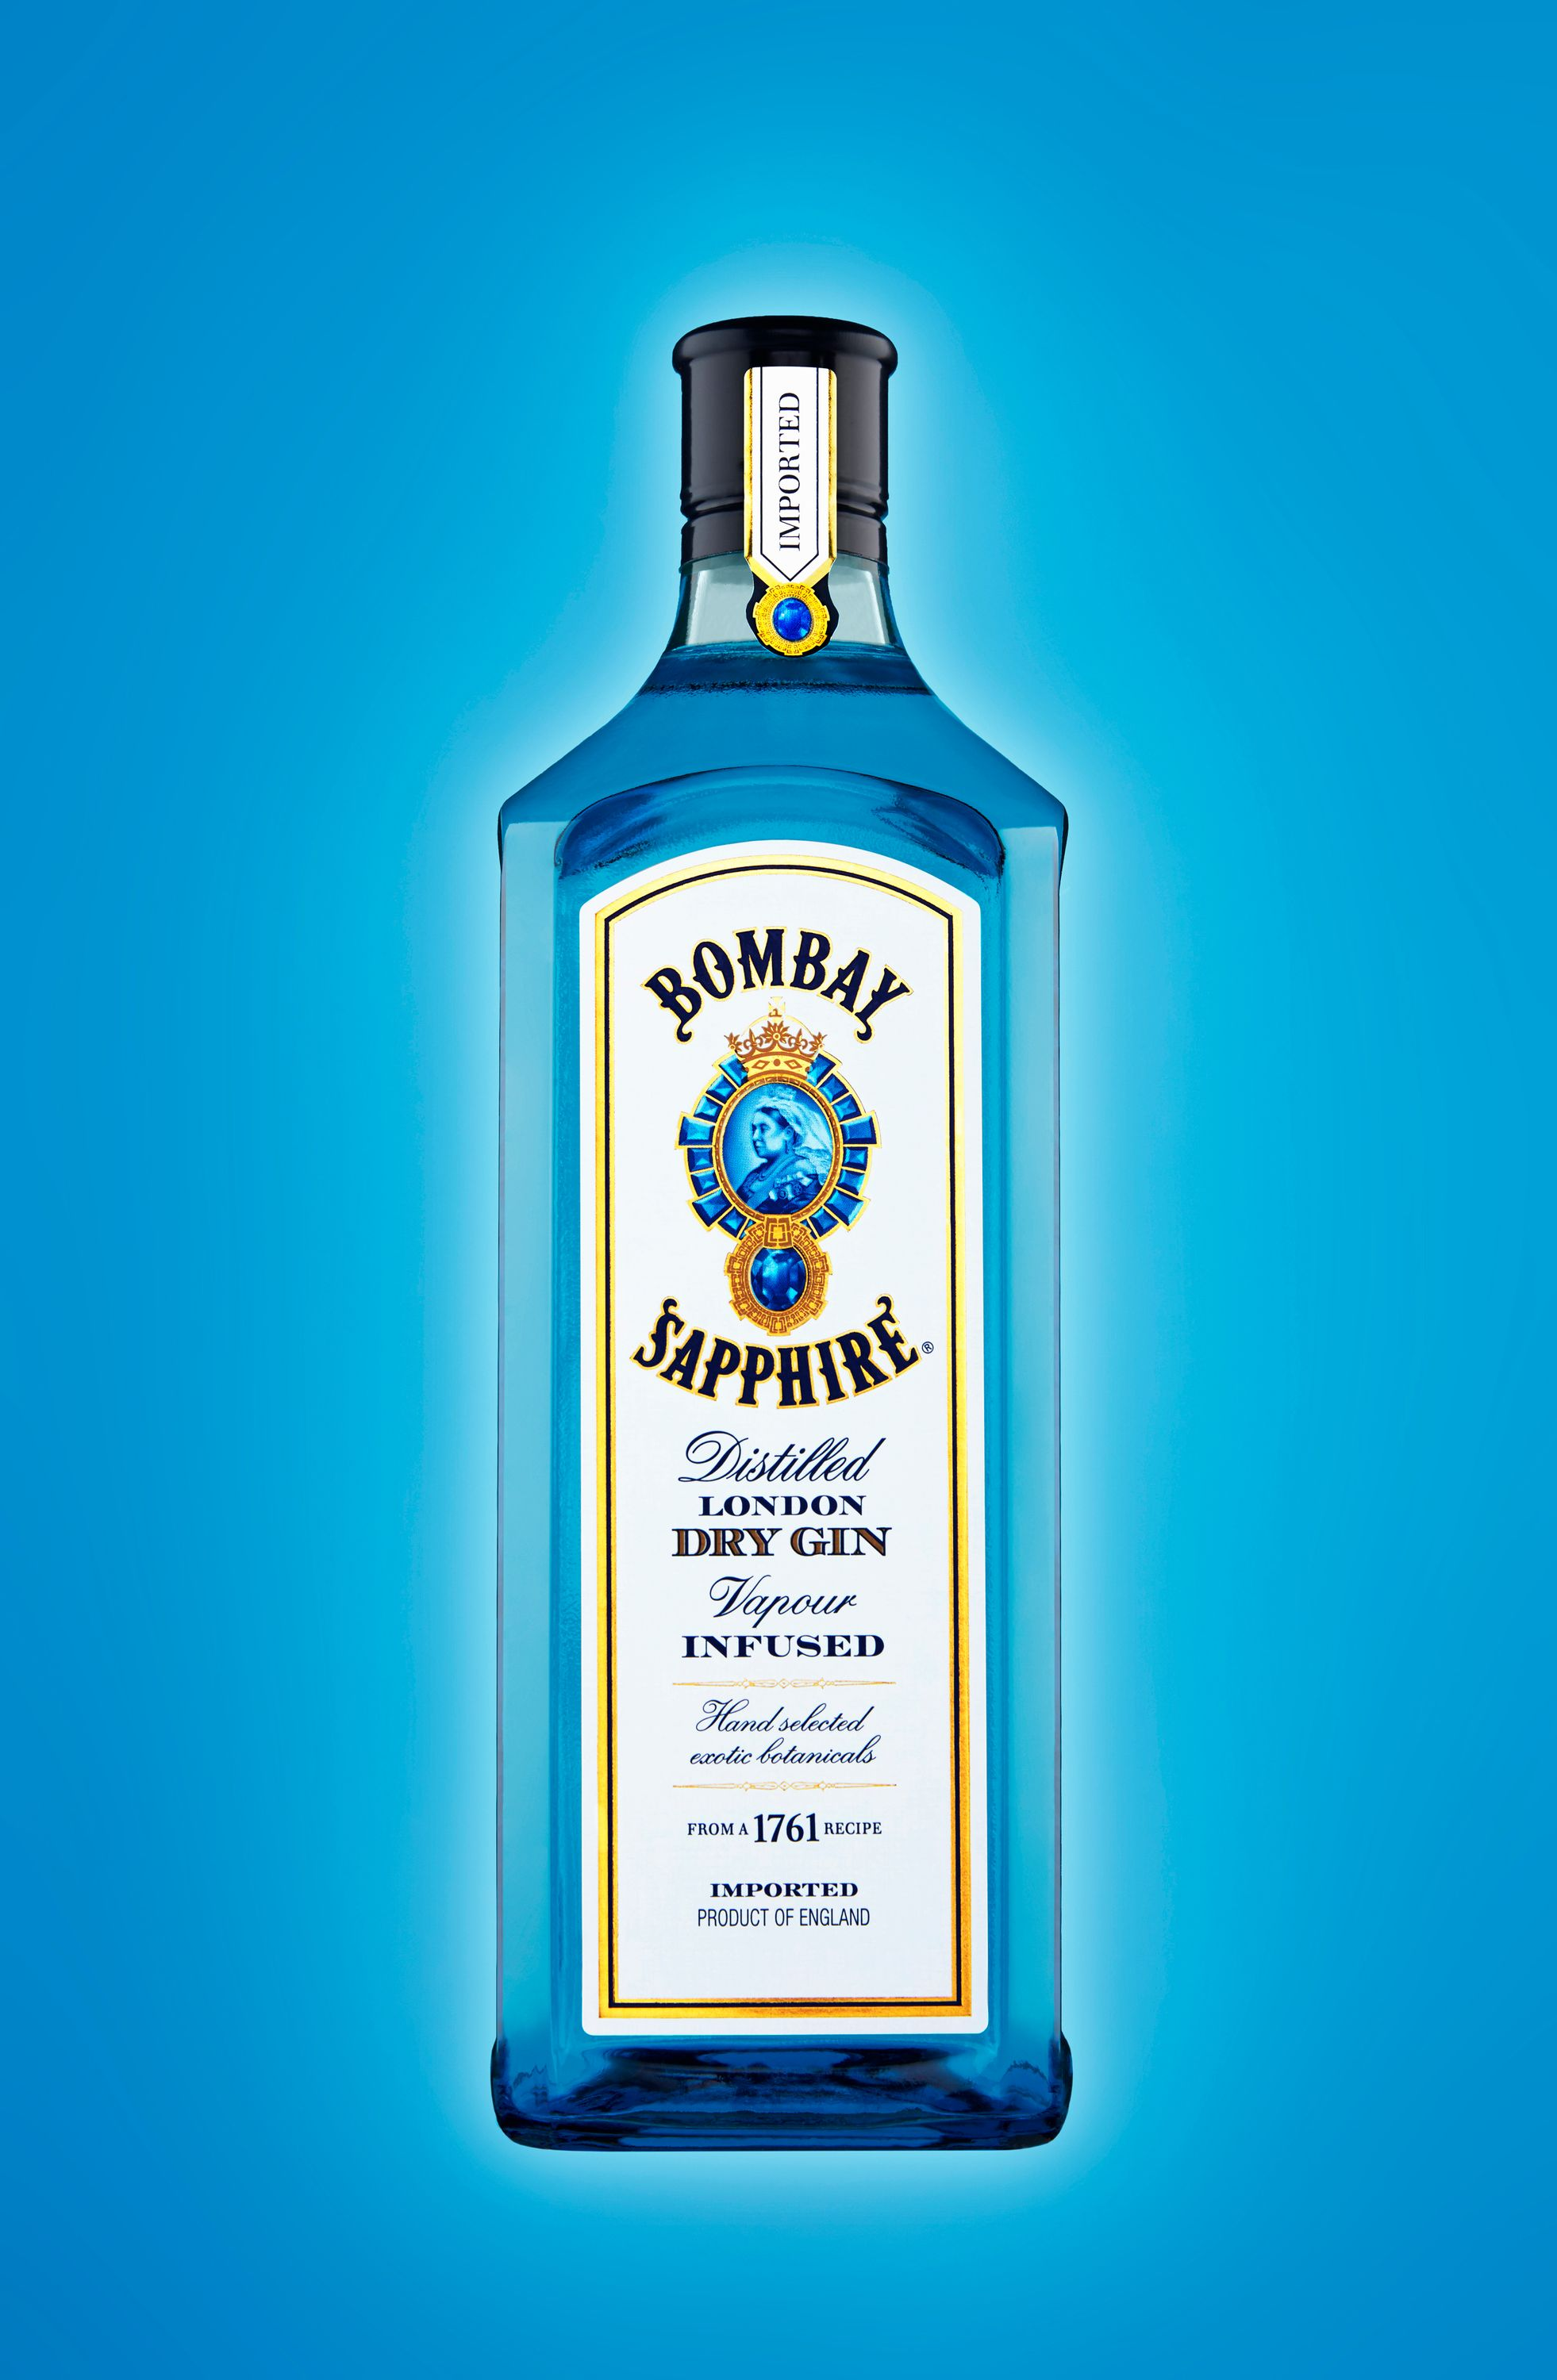 Bombay Bottle-RT4_Blublur25K.jpg